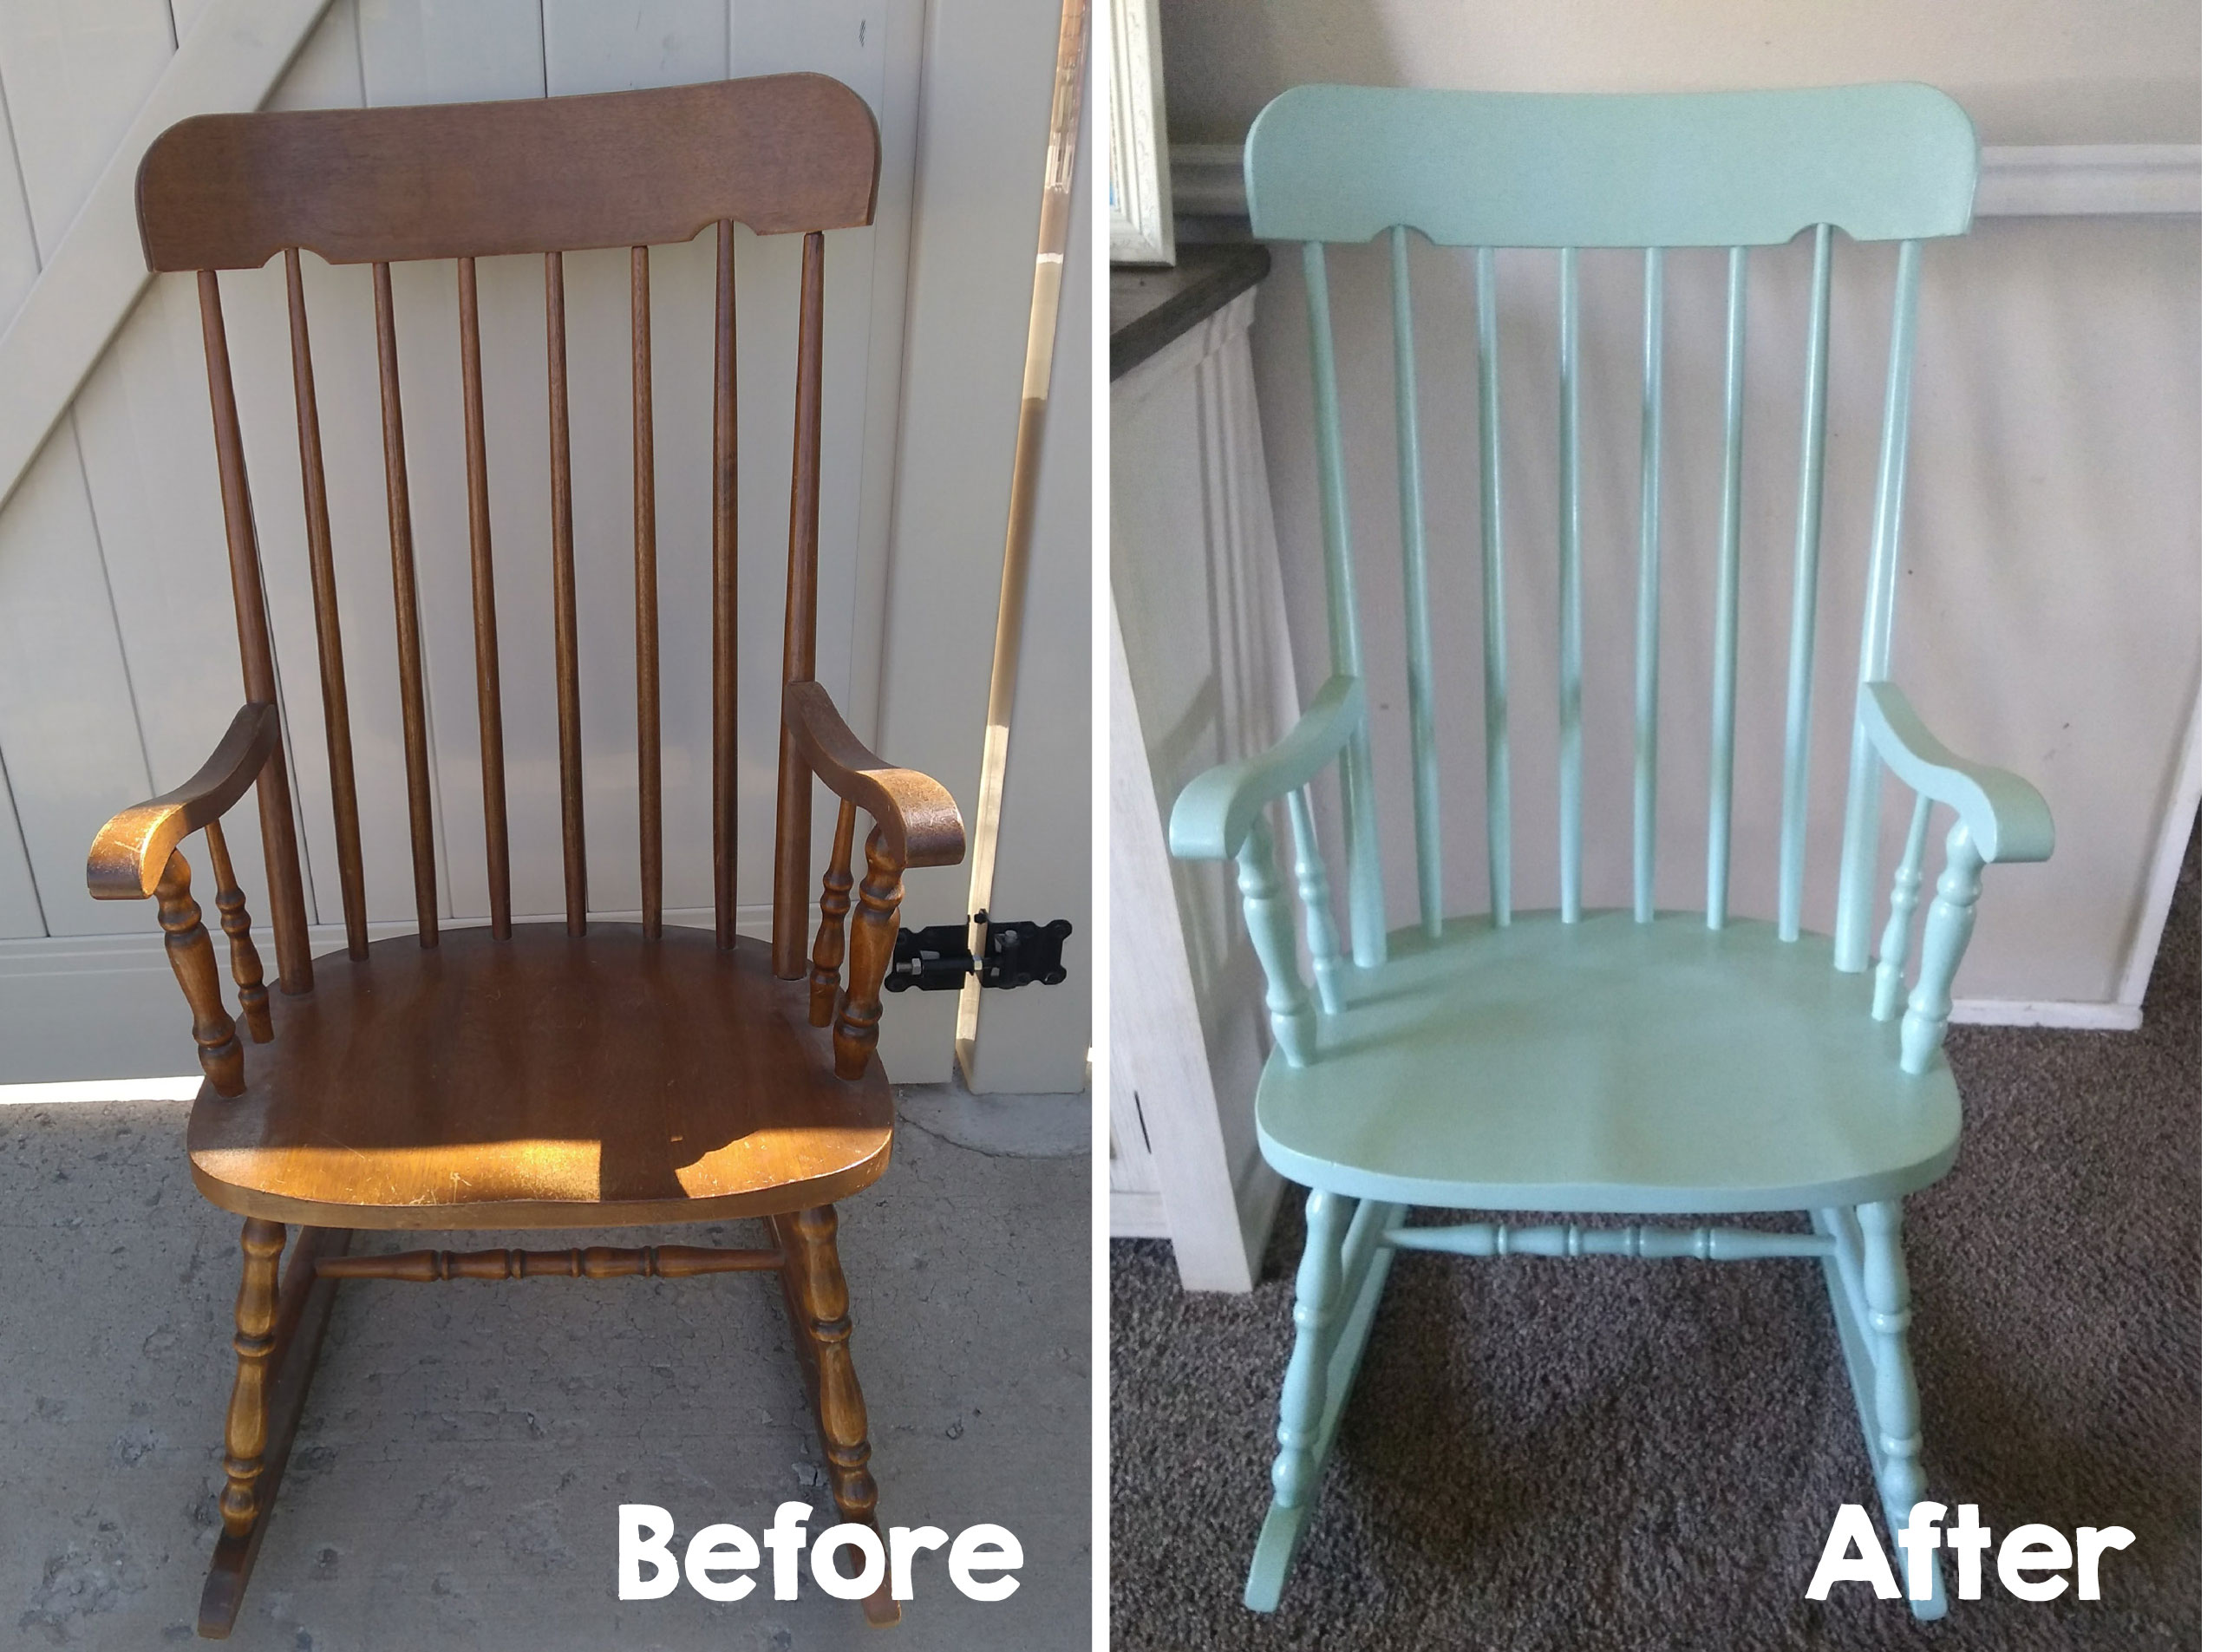 Gentil Before And After Pictures Of My Refinished Rocking Chair.